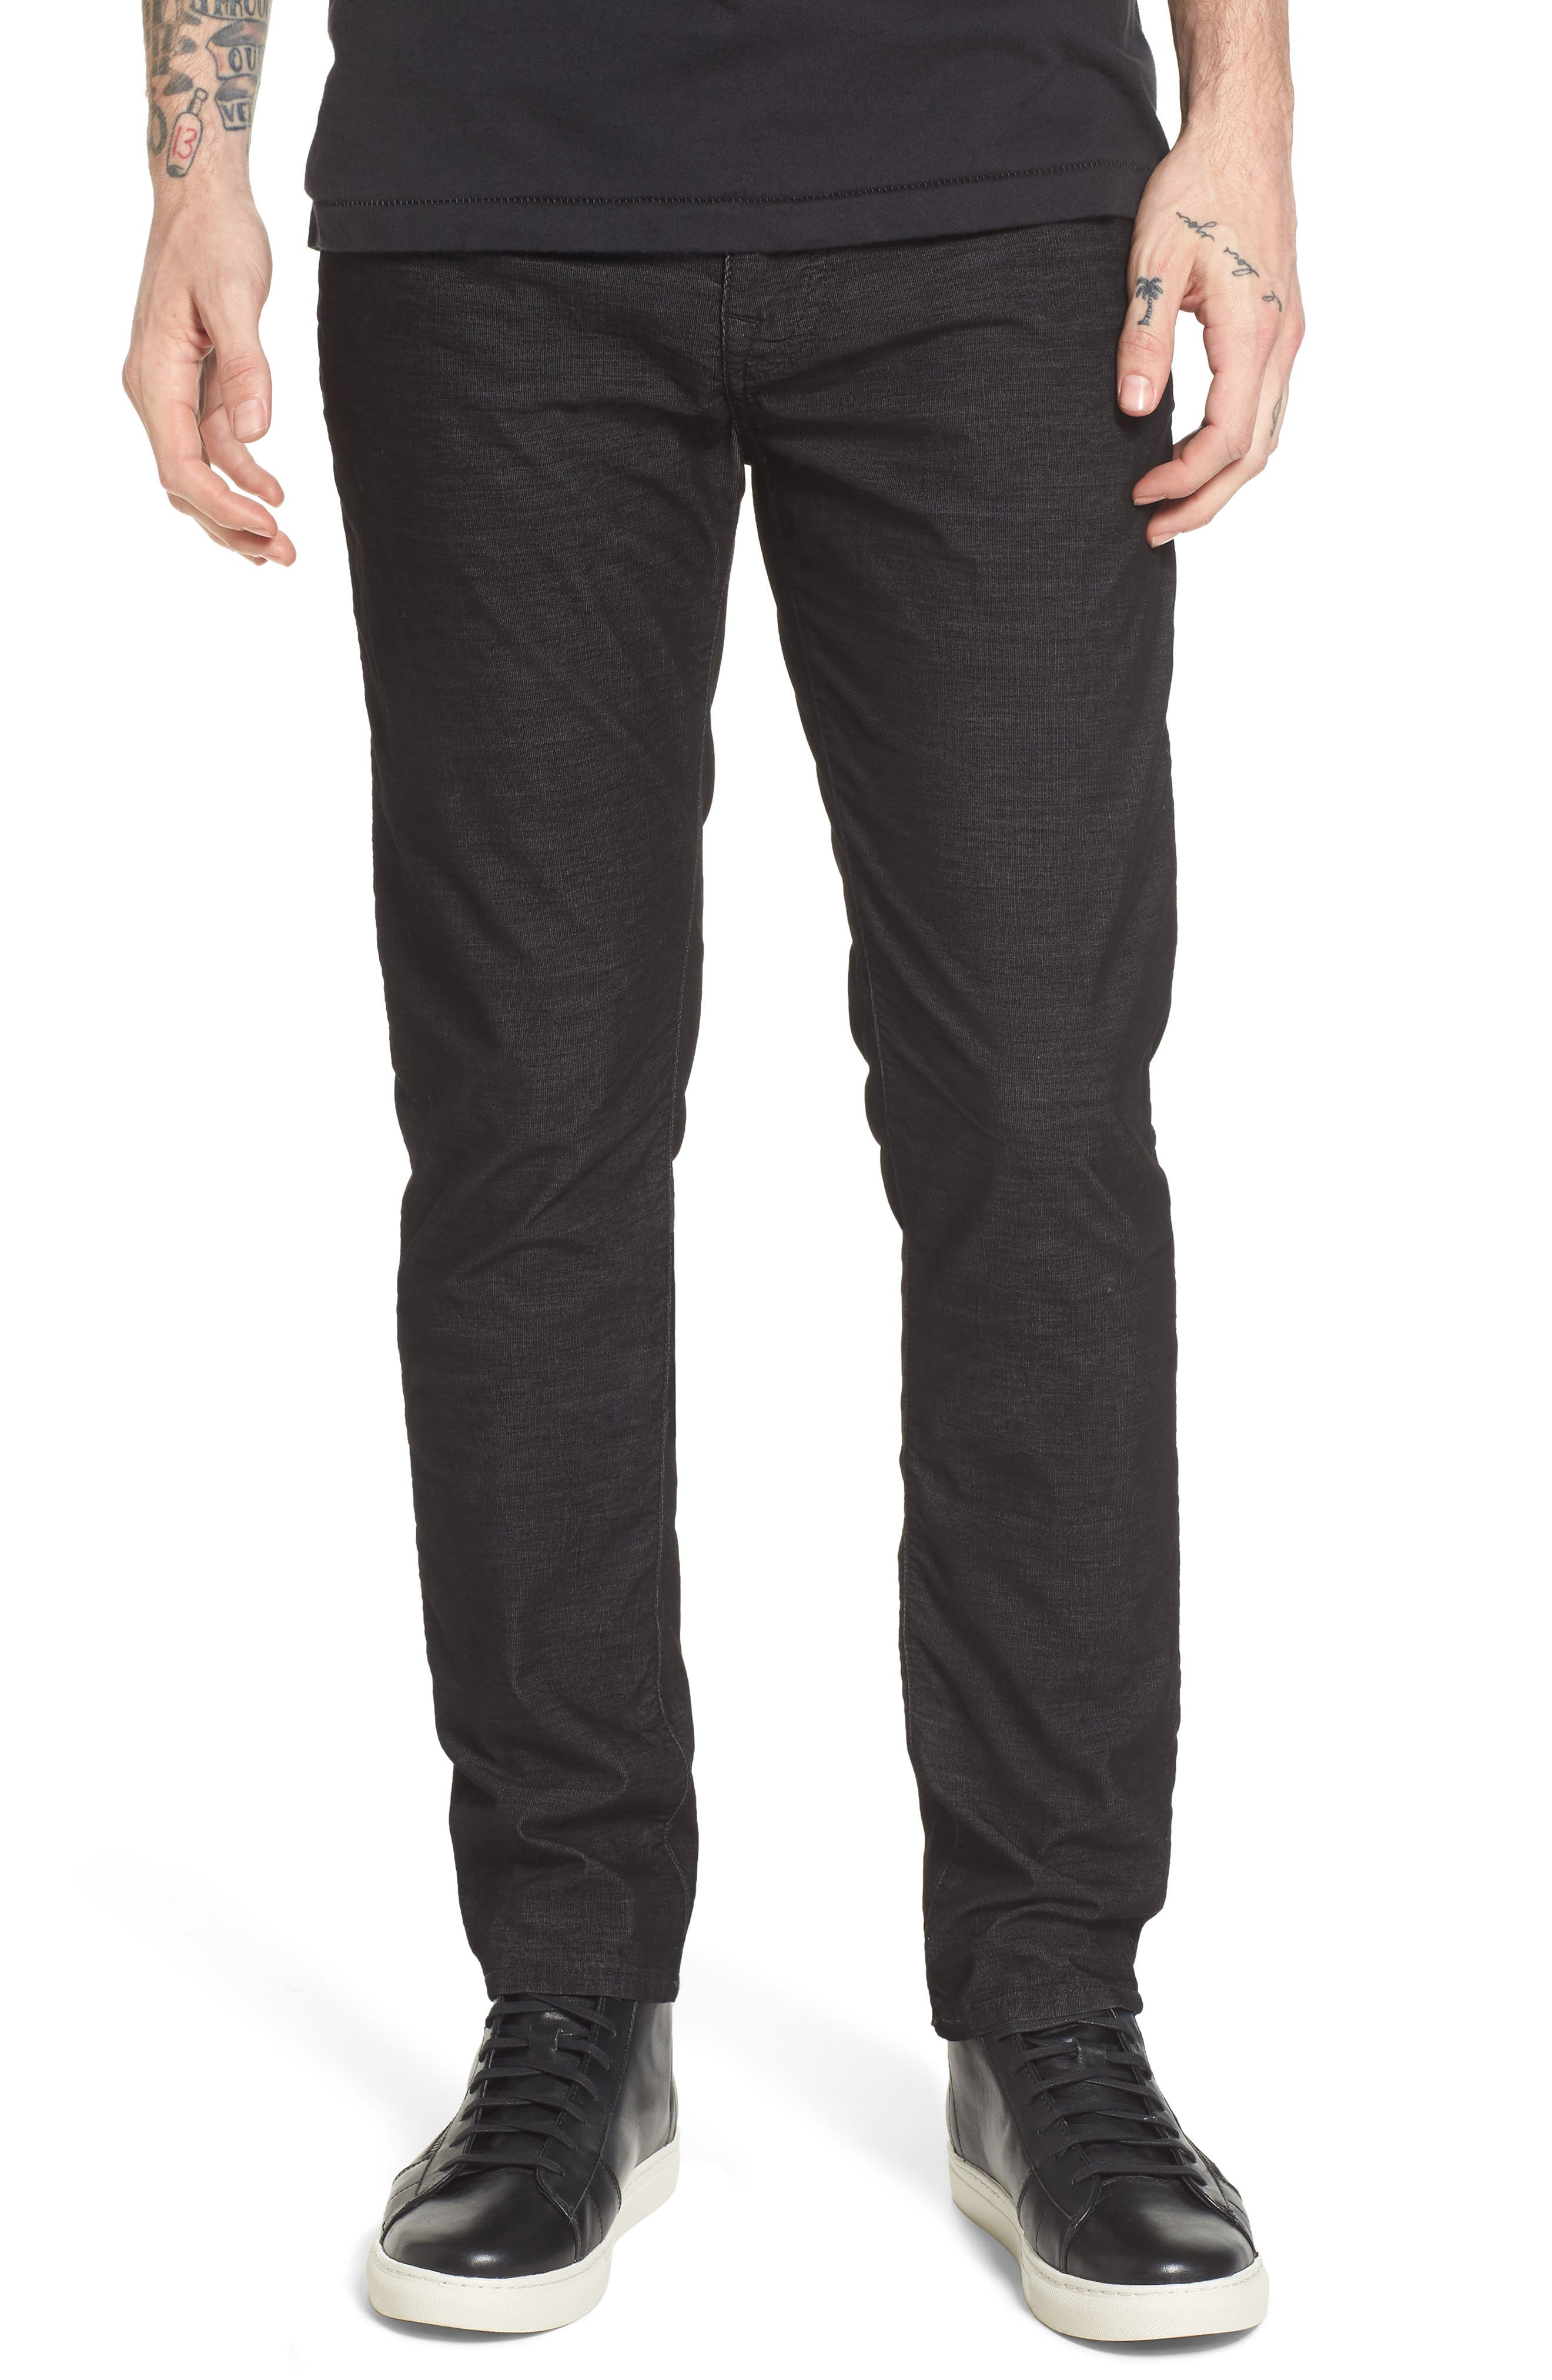 Rocco Skinny Fit Corduroy Jeans,                         Main,                         color, 001